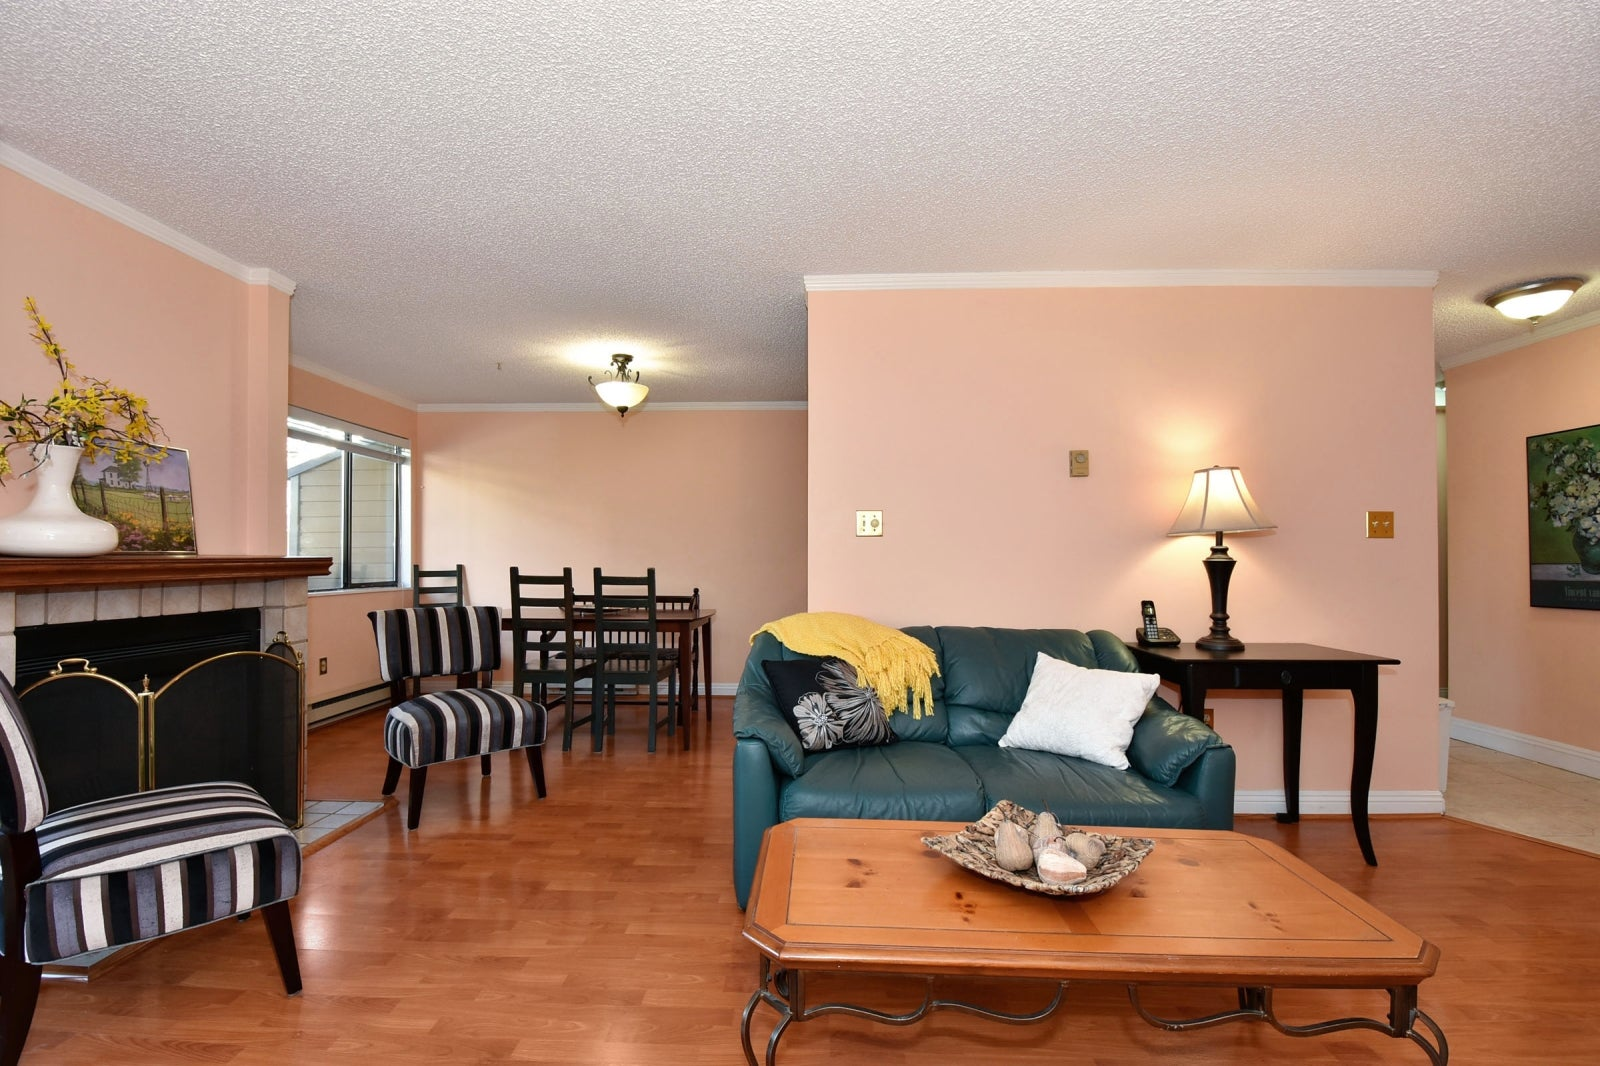 168 7293 MOFFATT ROAD - Brighouse South Apartment/Condo for sale, 2 Bedrooms (R2261480) #7